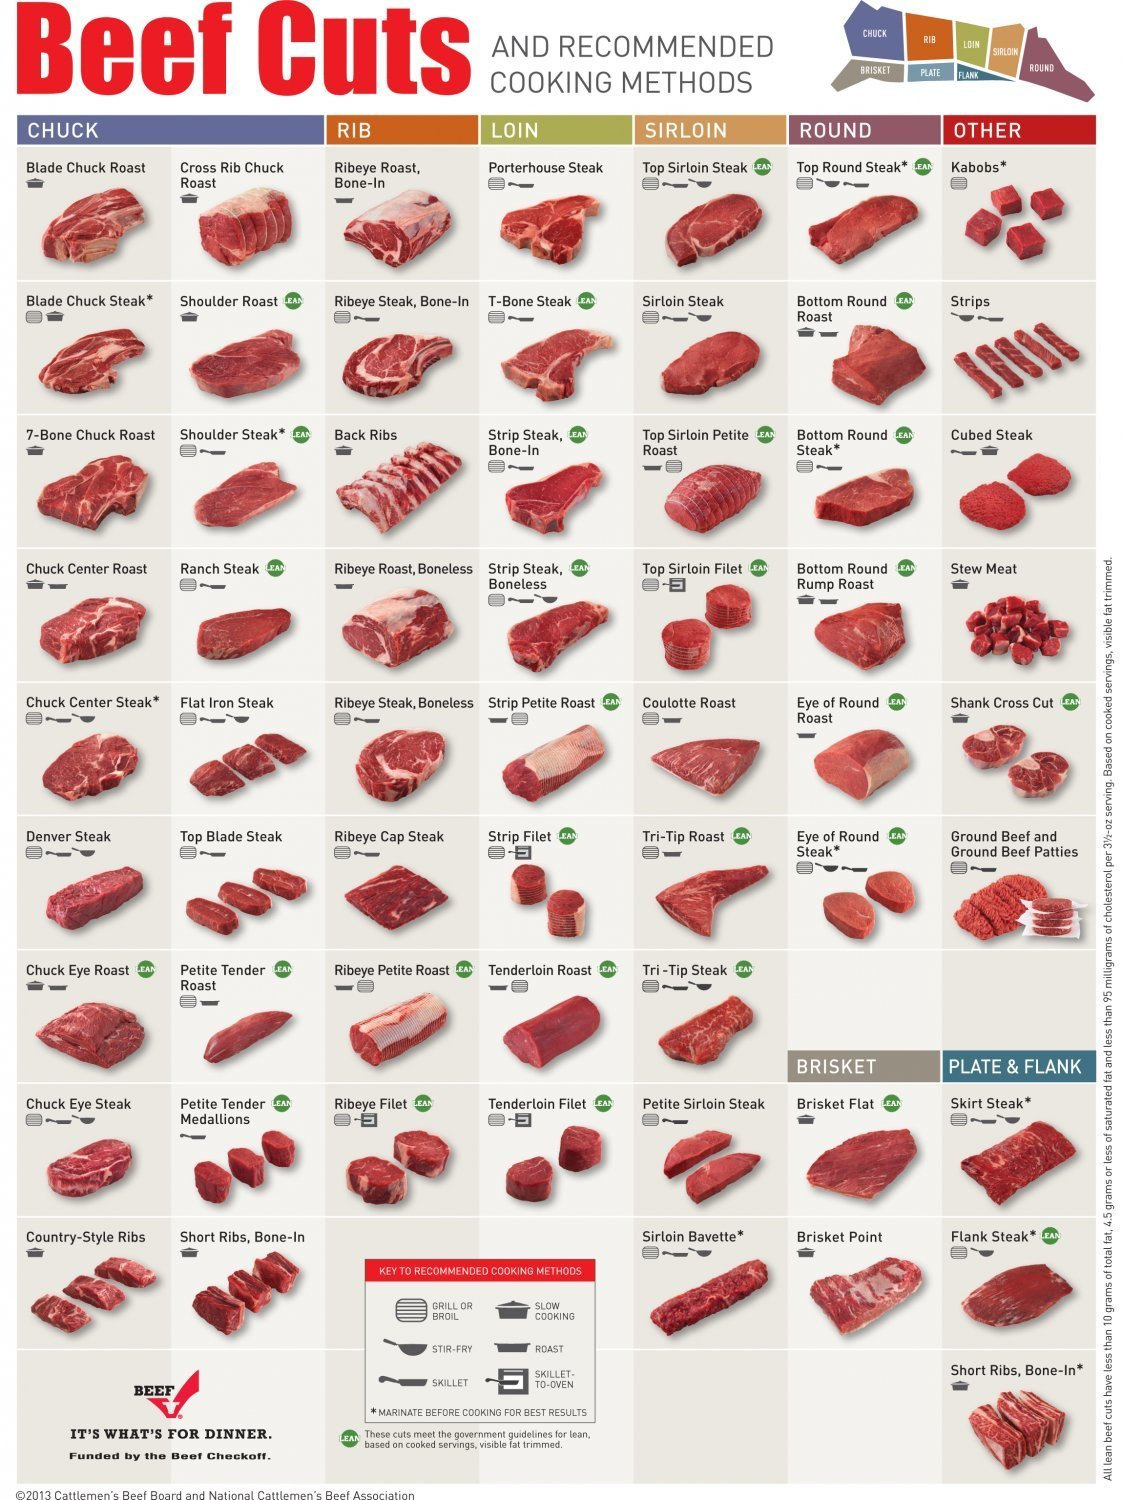 Beef Cuts Recommended Cooking Methods Chart  18x28 inches Canvas Print